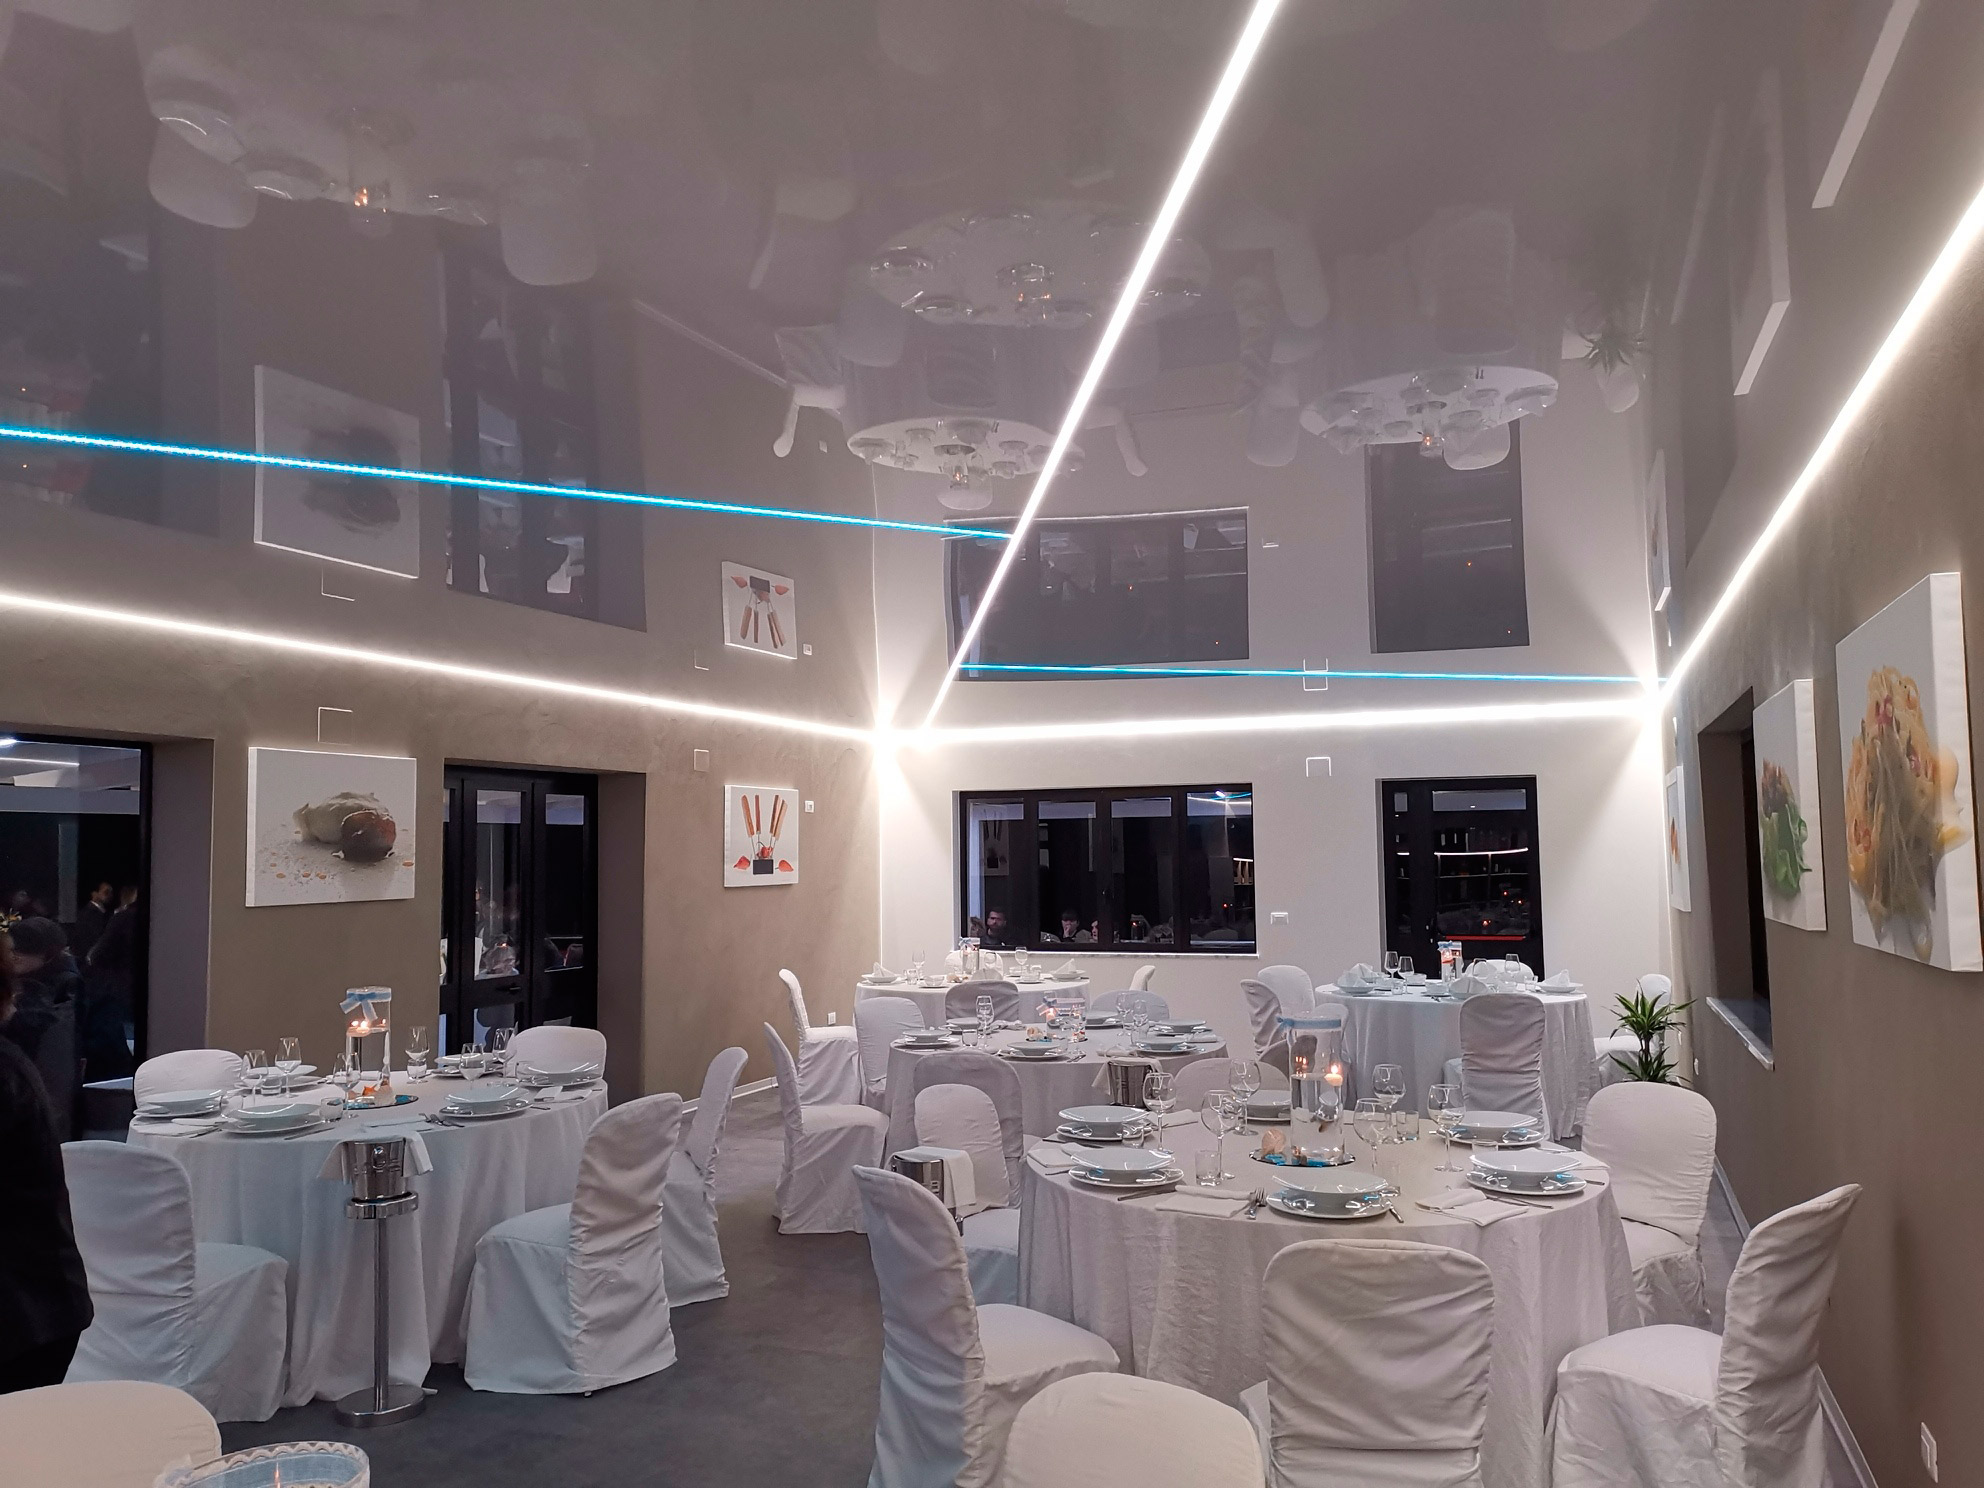 stretch-ceiling-restaurant-italy-image-2